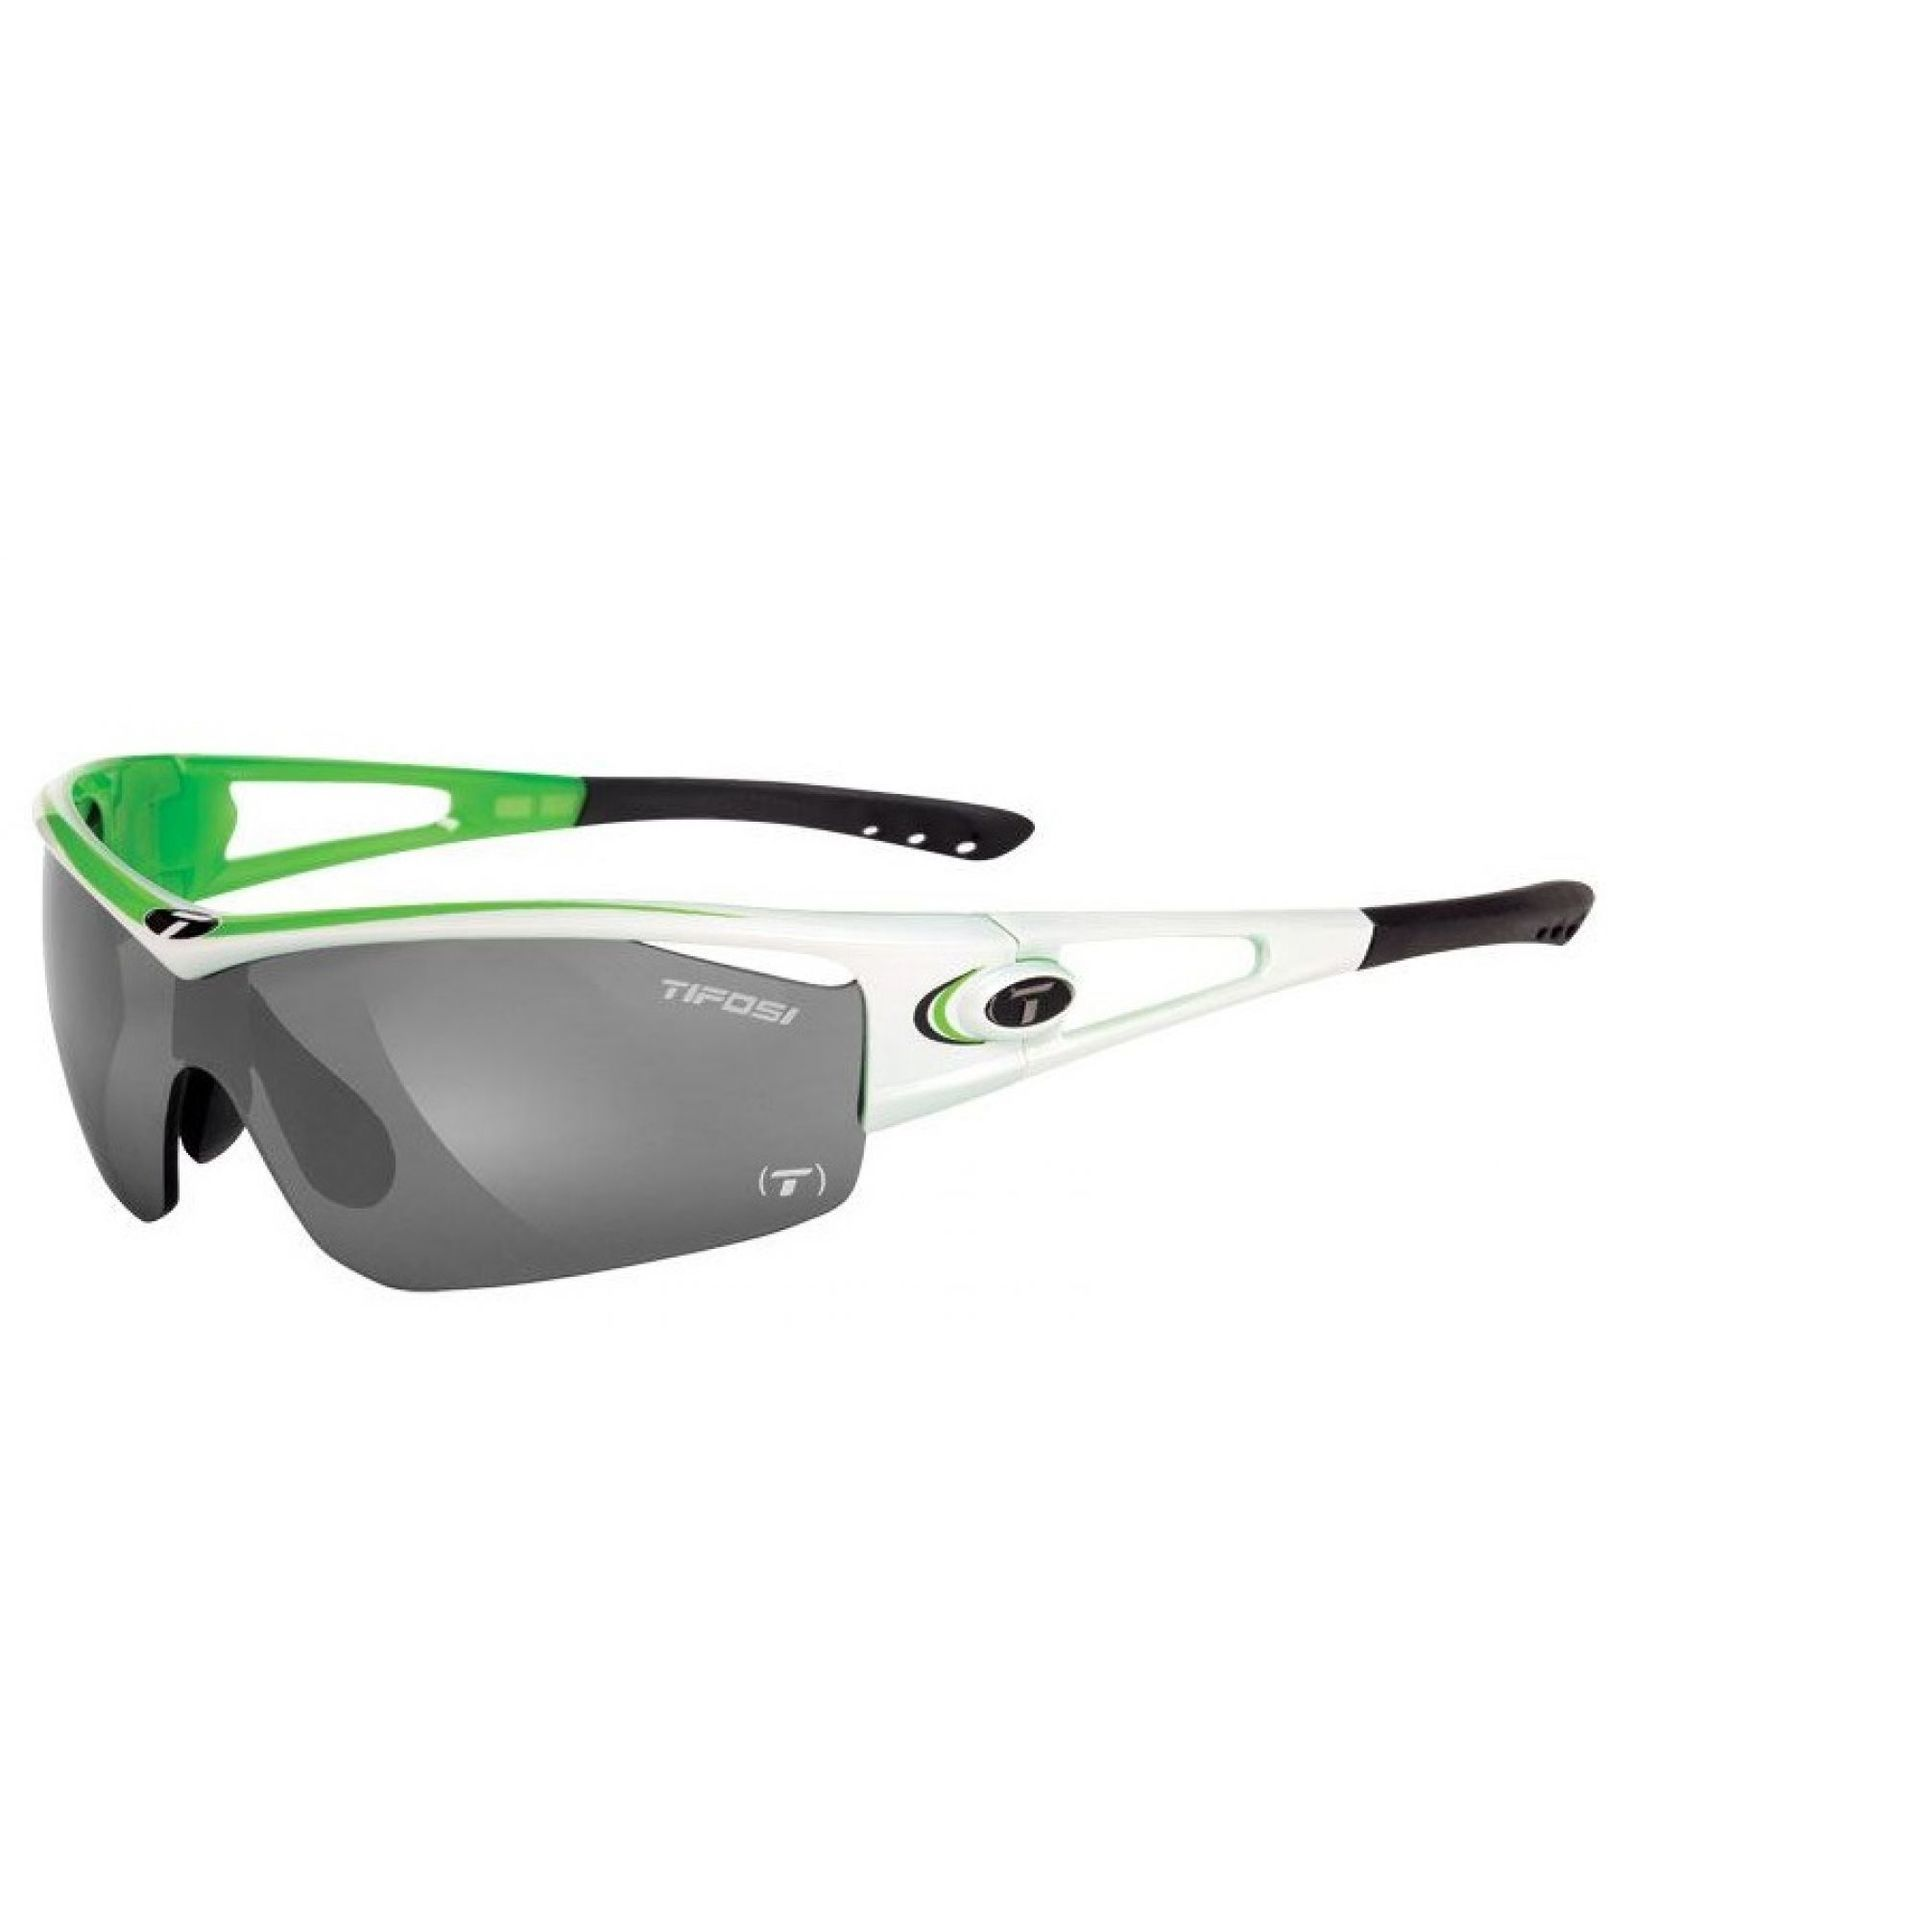 Okulary Tifosi Logic race neon